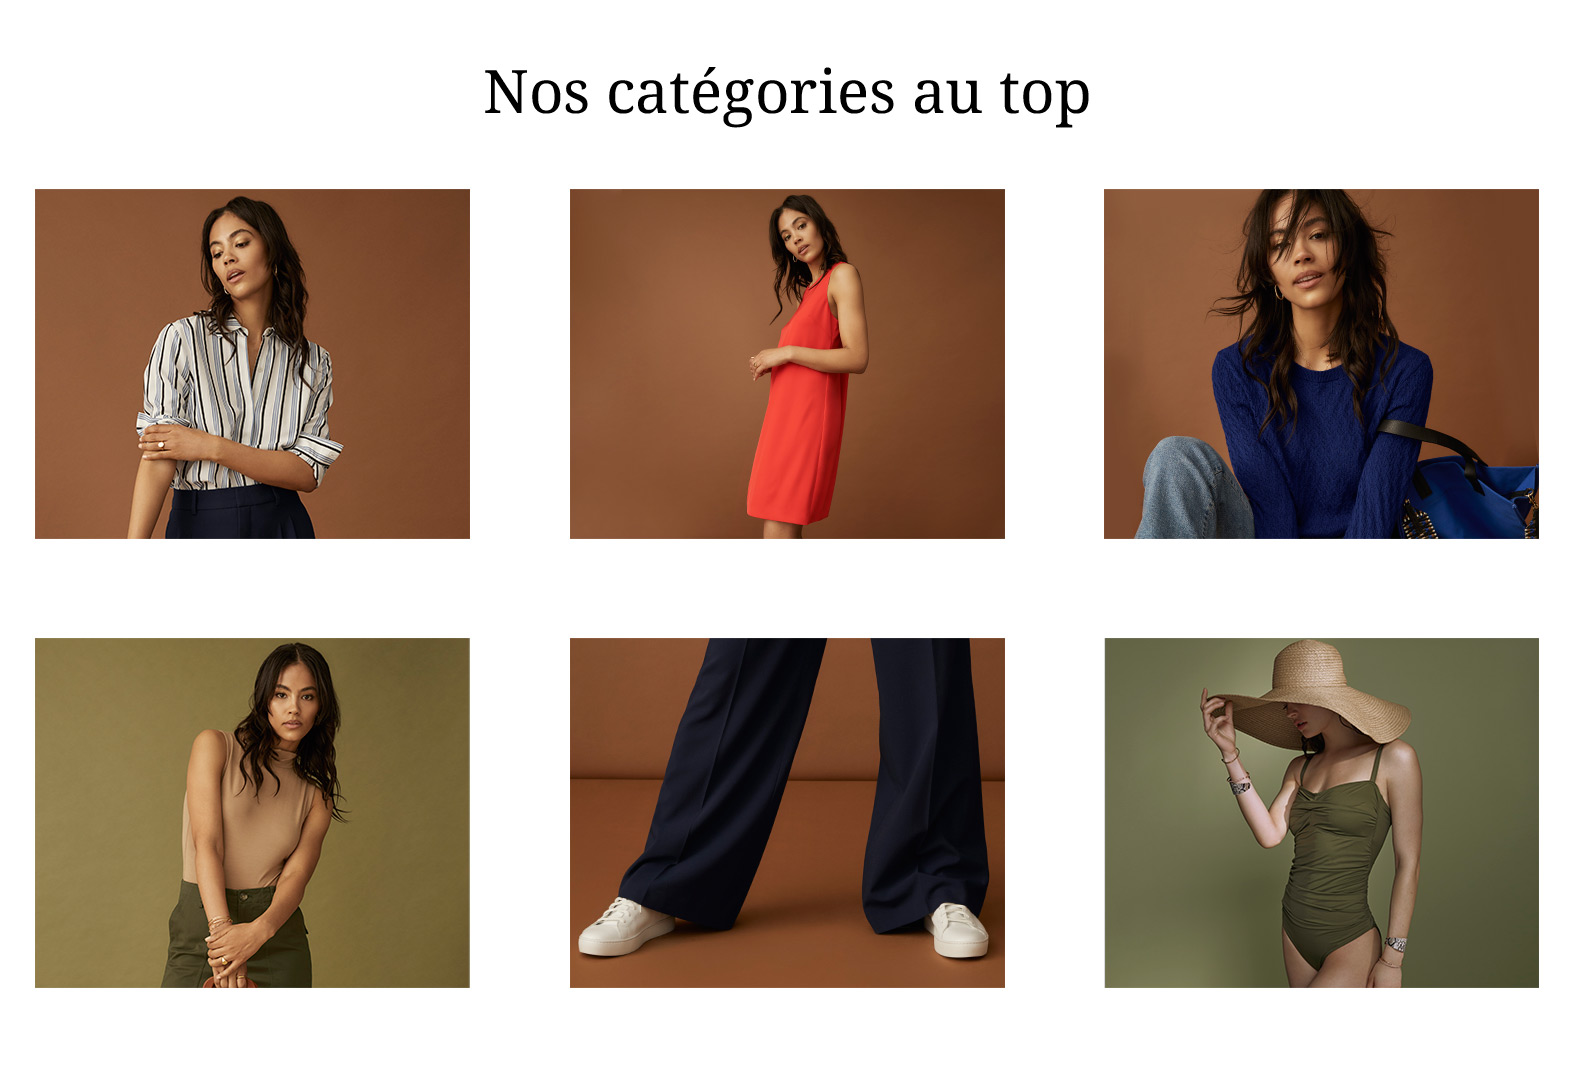 D-LF-02-P19-CONTEMPORAINE-Categories.psd